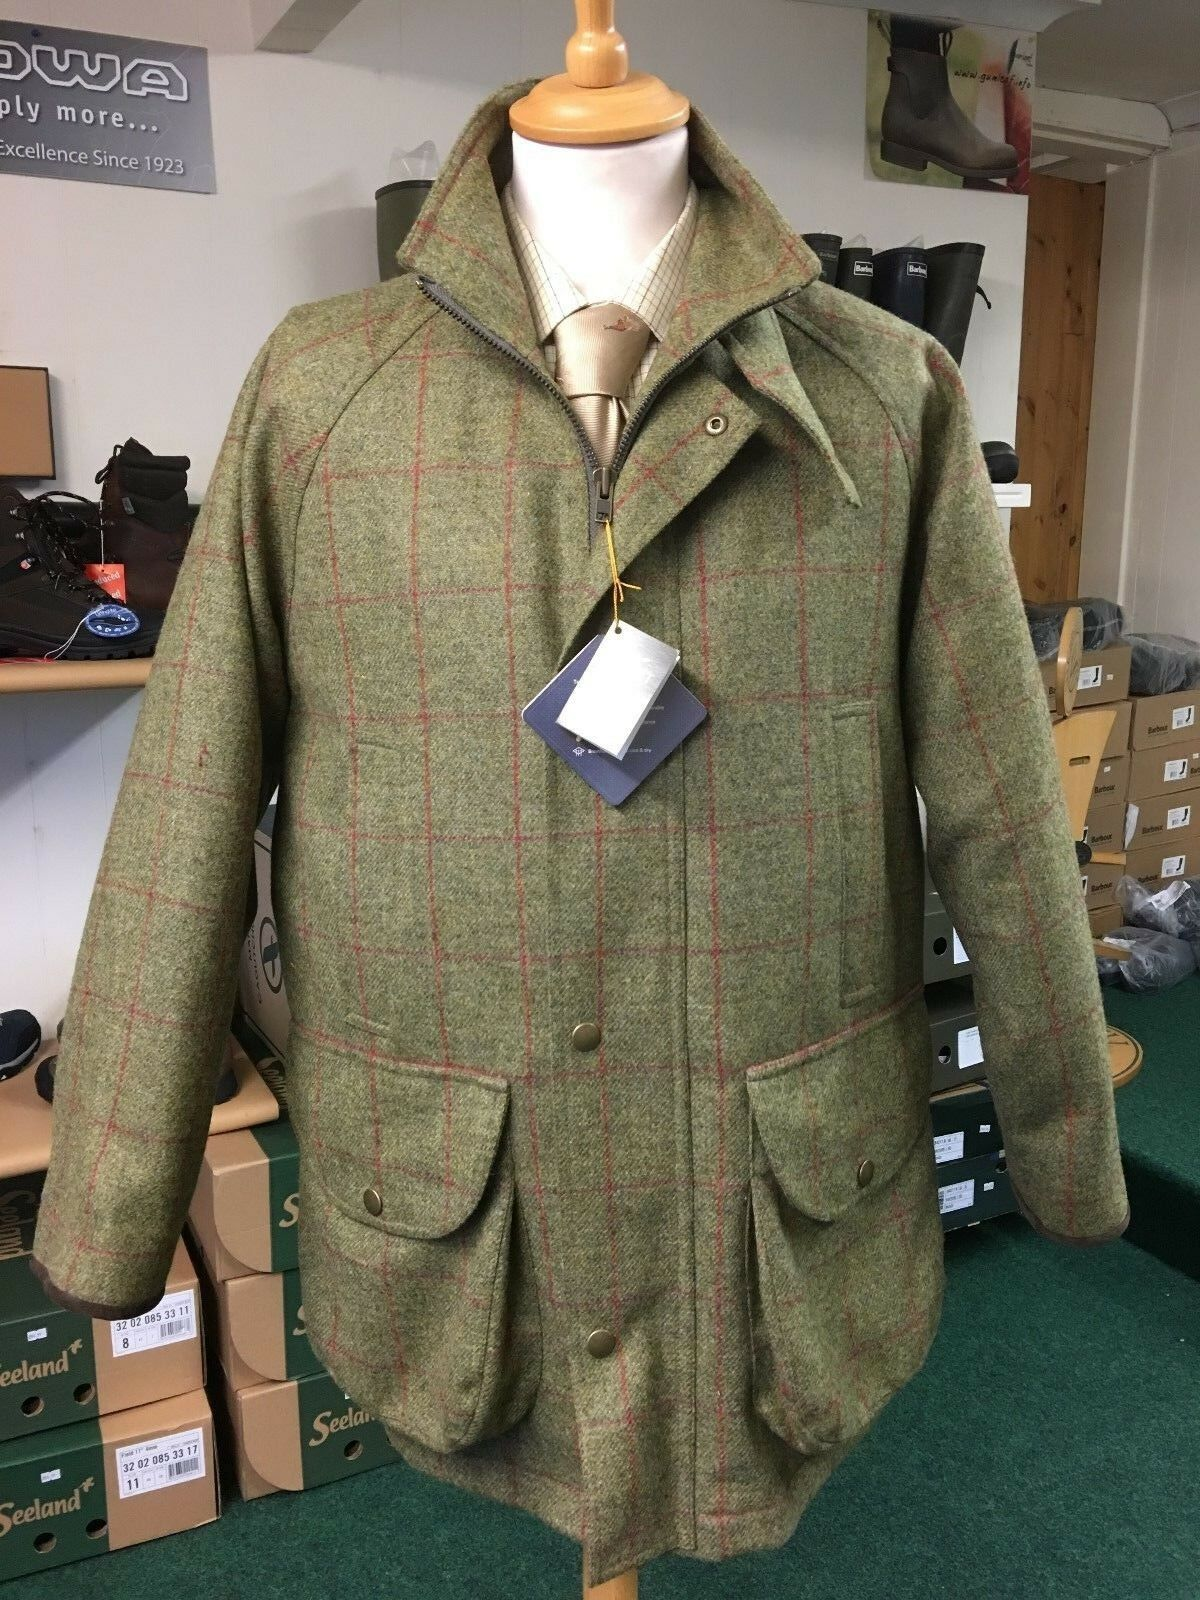 Bonart Tweed Shooting Coat 100% British Wool Waterproof & Breathable Green Sale